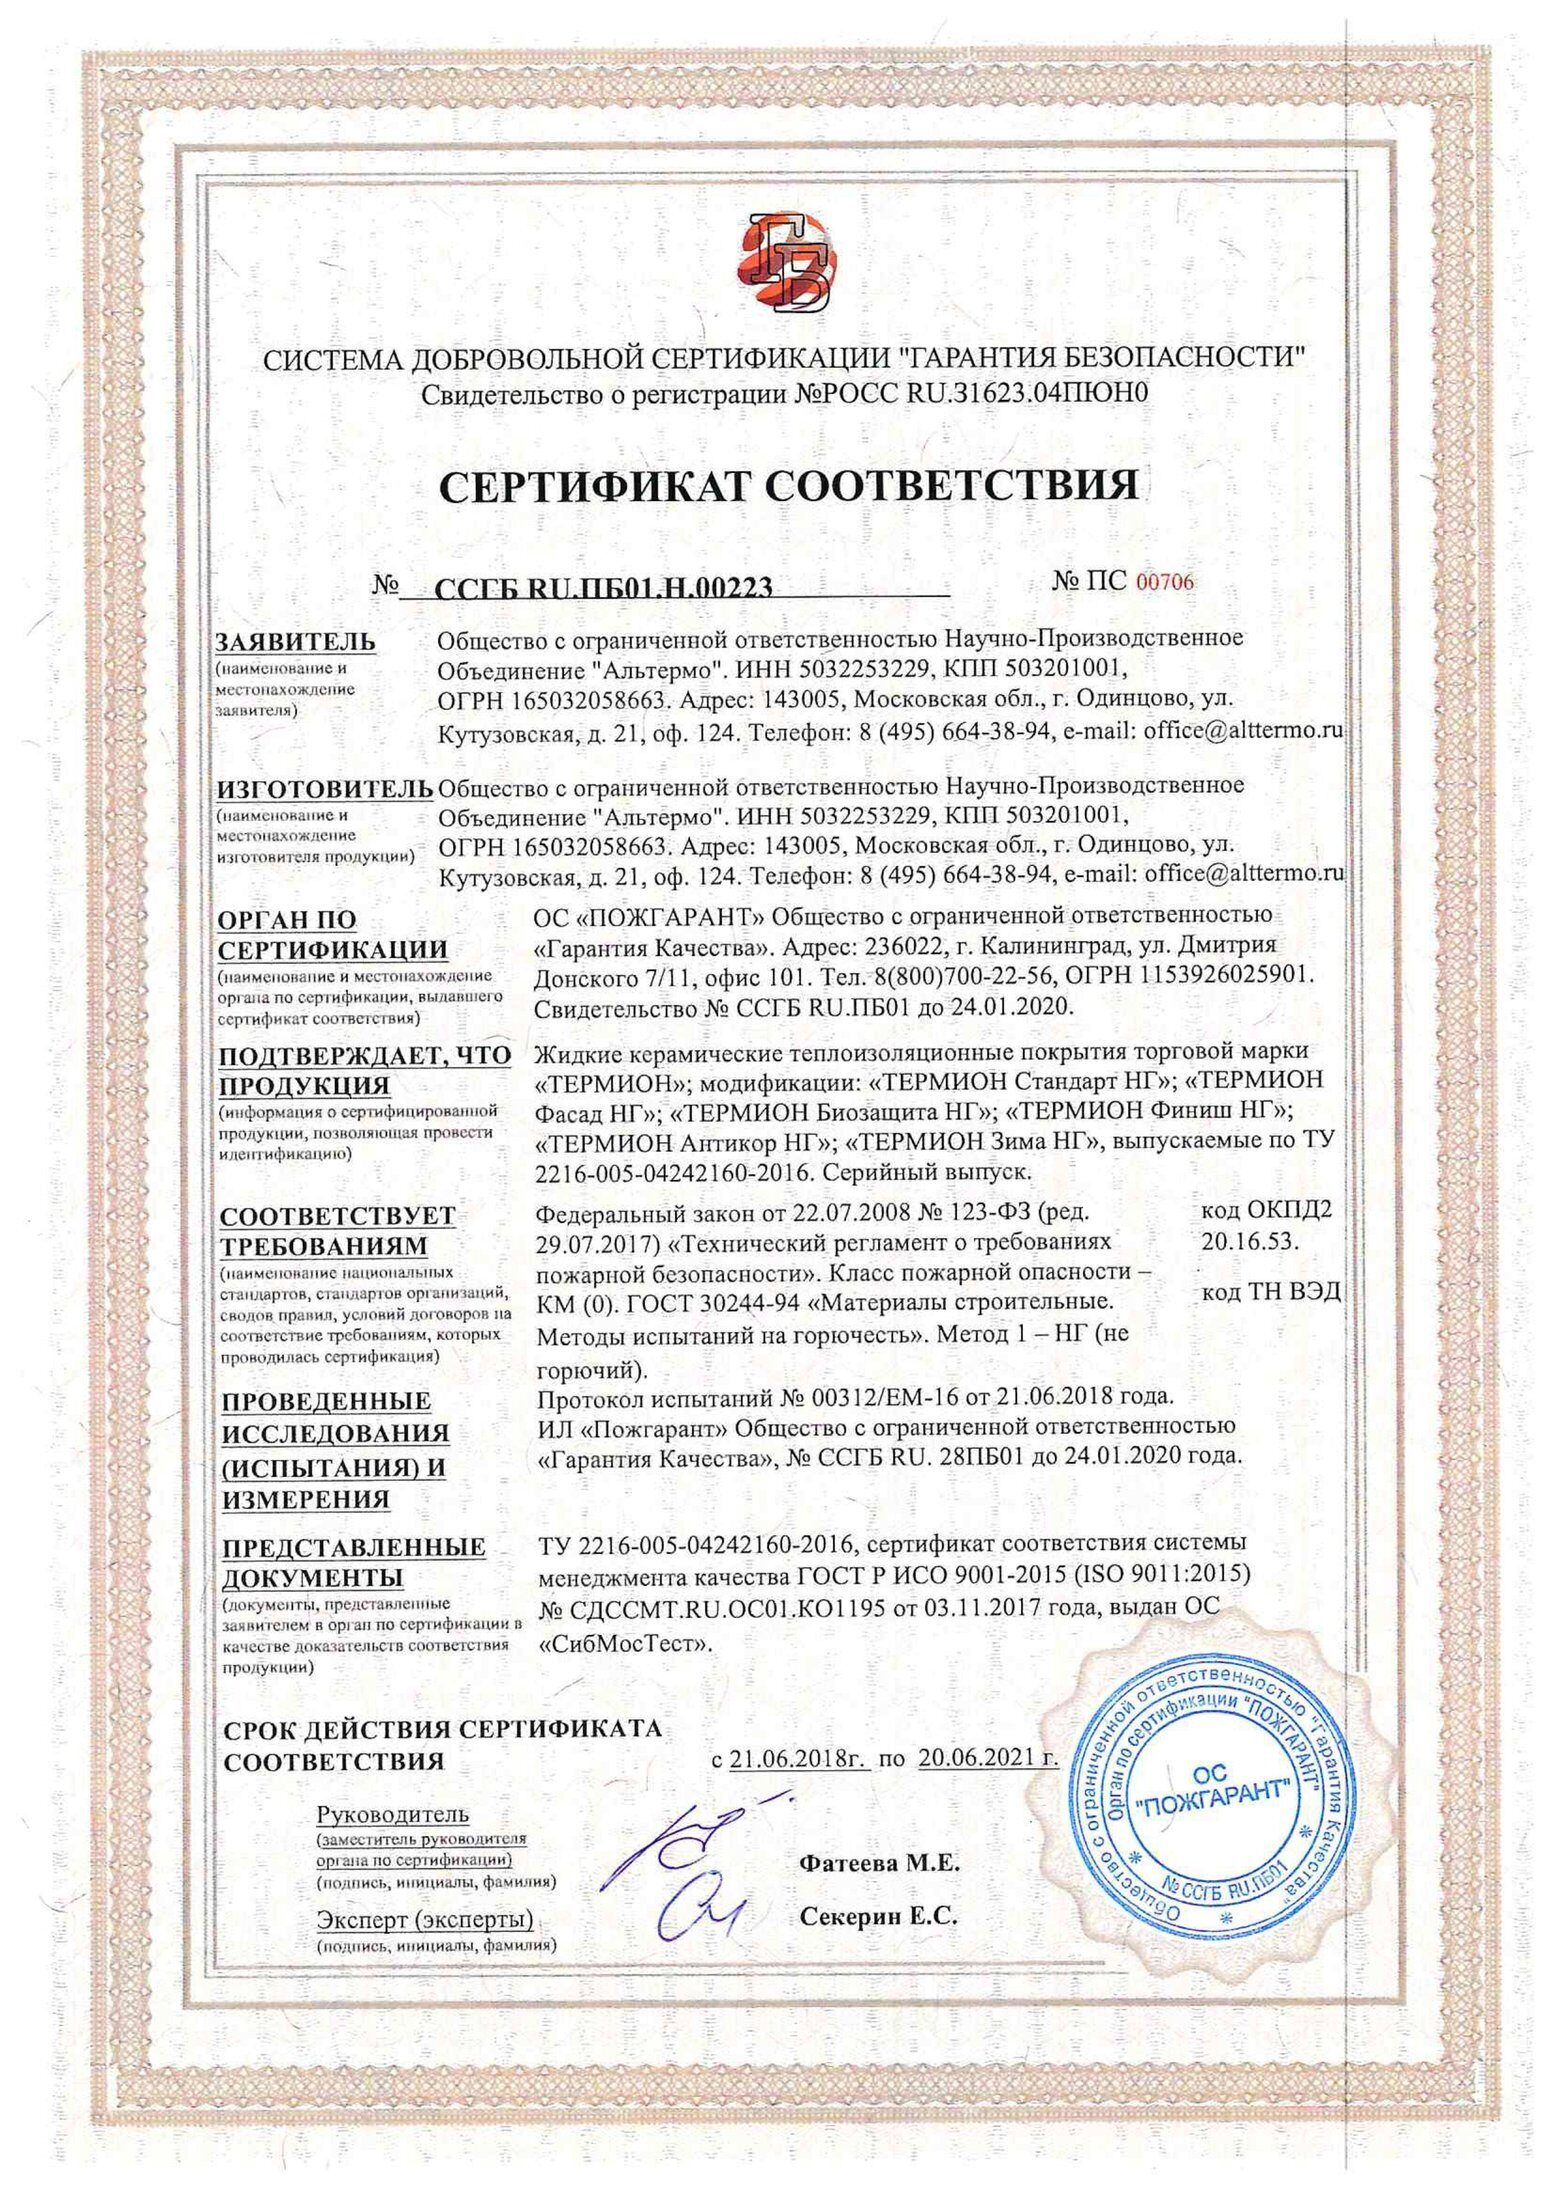 9. CERTIFICATE OF FIRE SAFETY OF LIQUID INSULATION incombustible